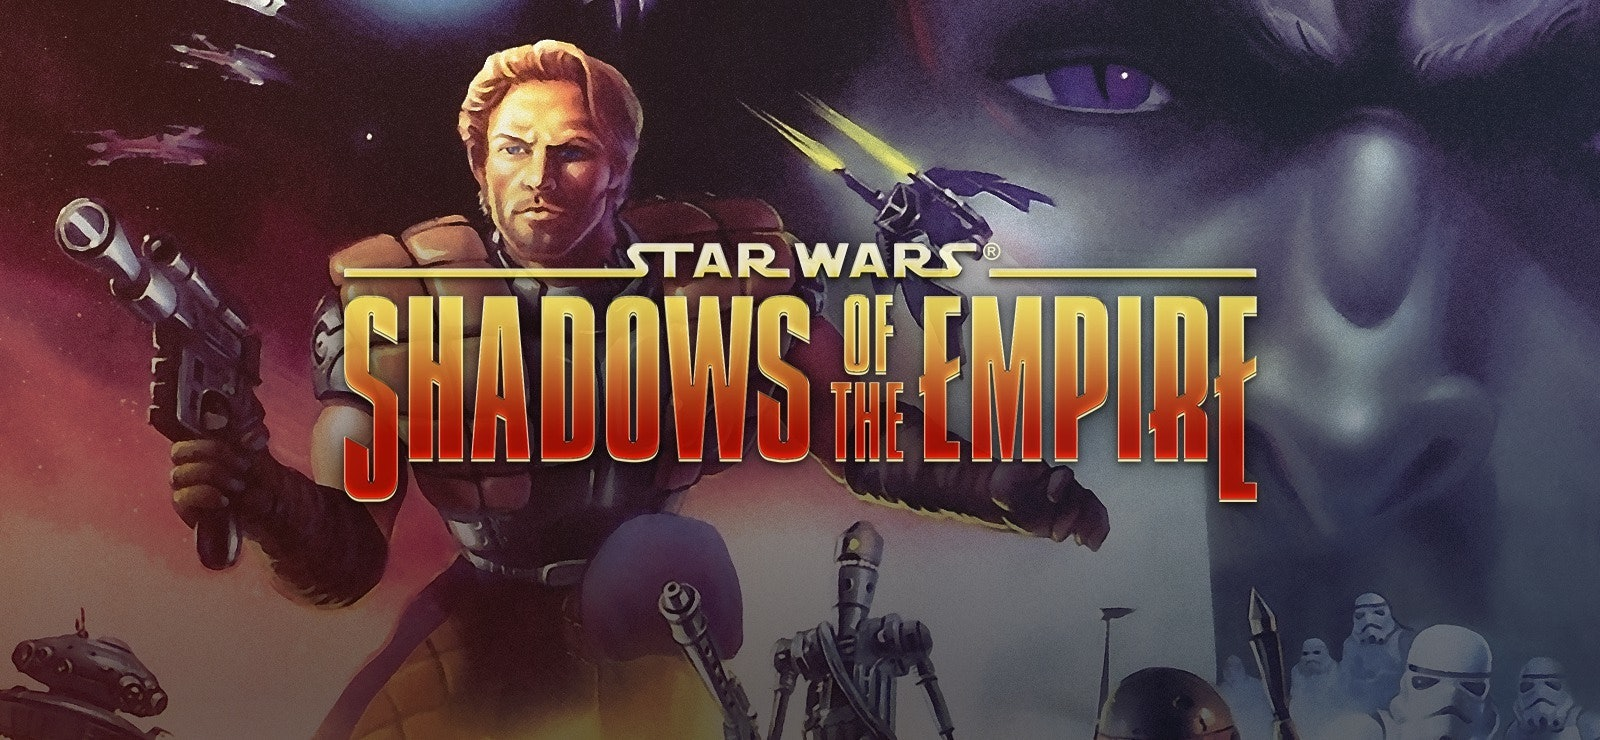 Dash Rendar wields his blaster as Prince Xizor looks on in box art for the N64 version of 'Shadows of the Empire.'Dash Rendar wields his blaster as Prince Xizor looks on in box art for the N64 version of 'Shadows of the Empire.'